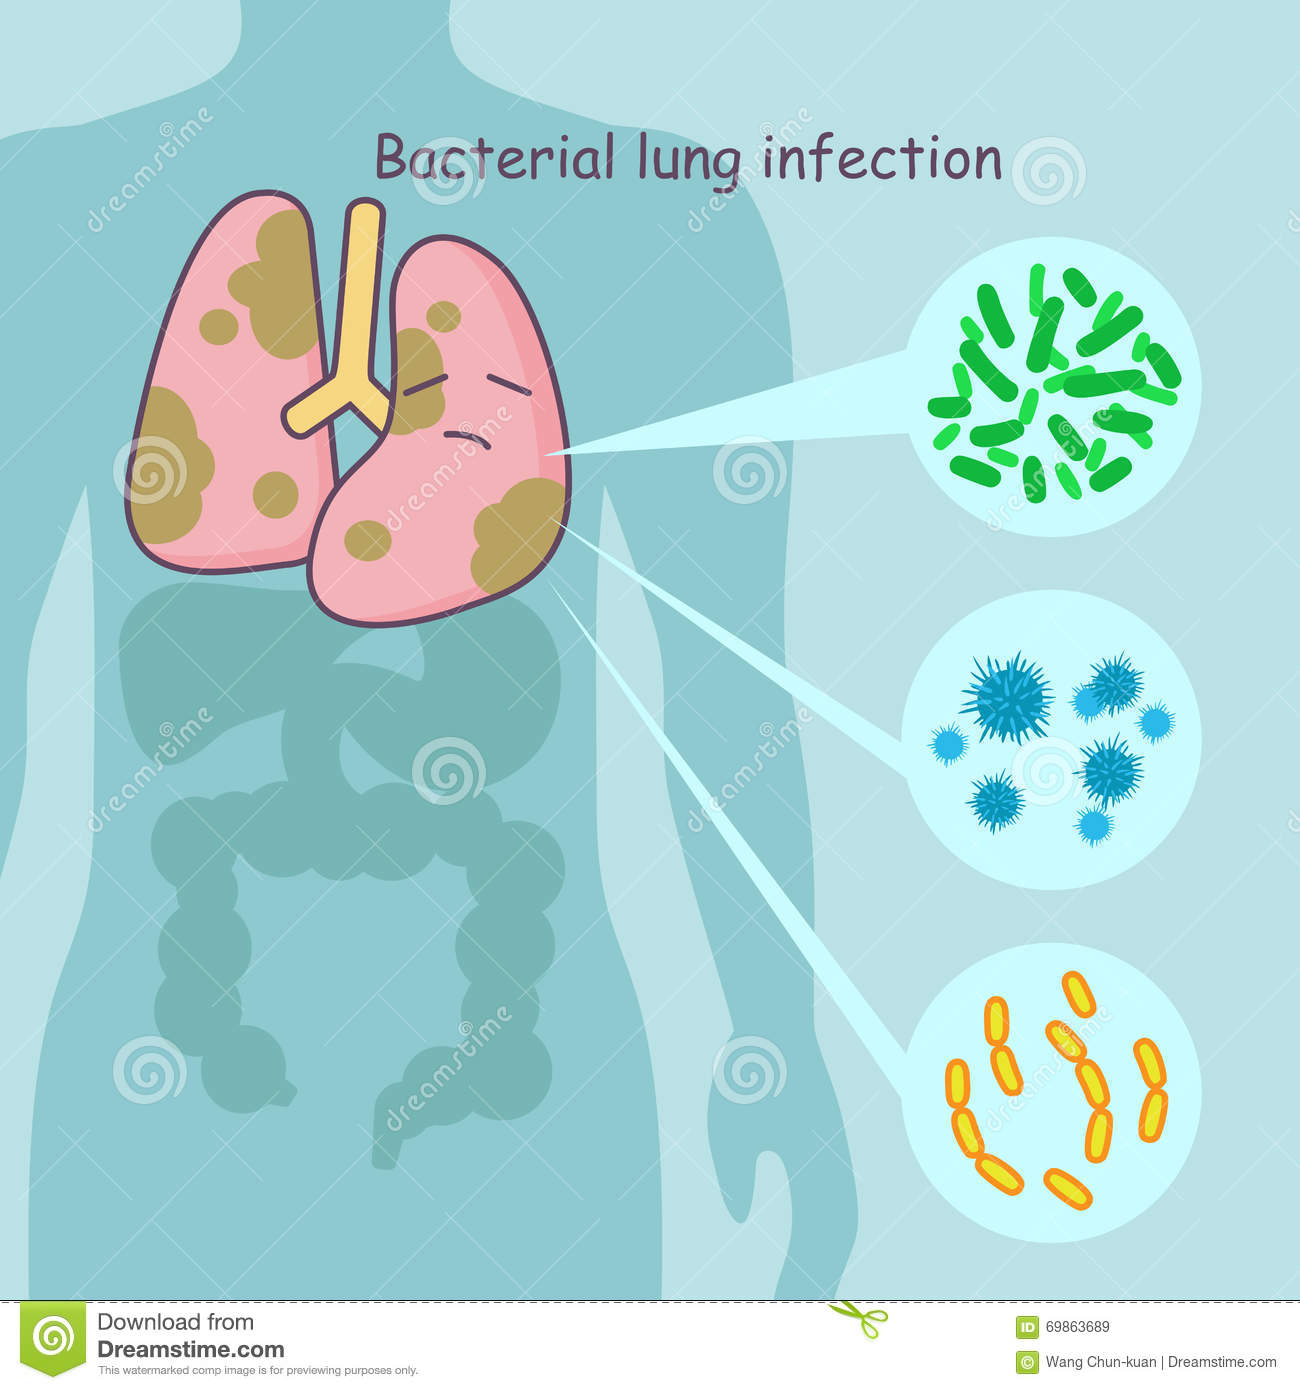 Bacterial Lung Infection — Is Lung Cancer Next